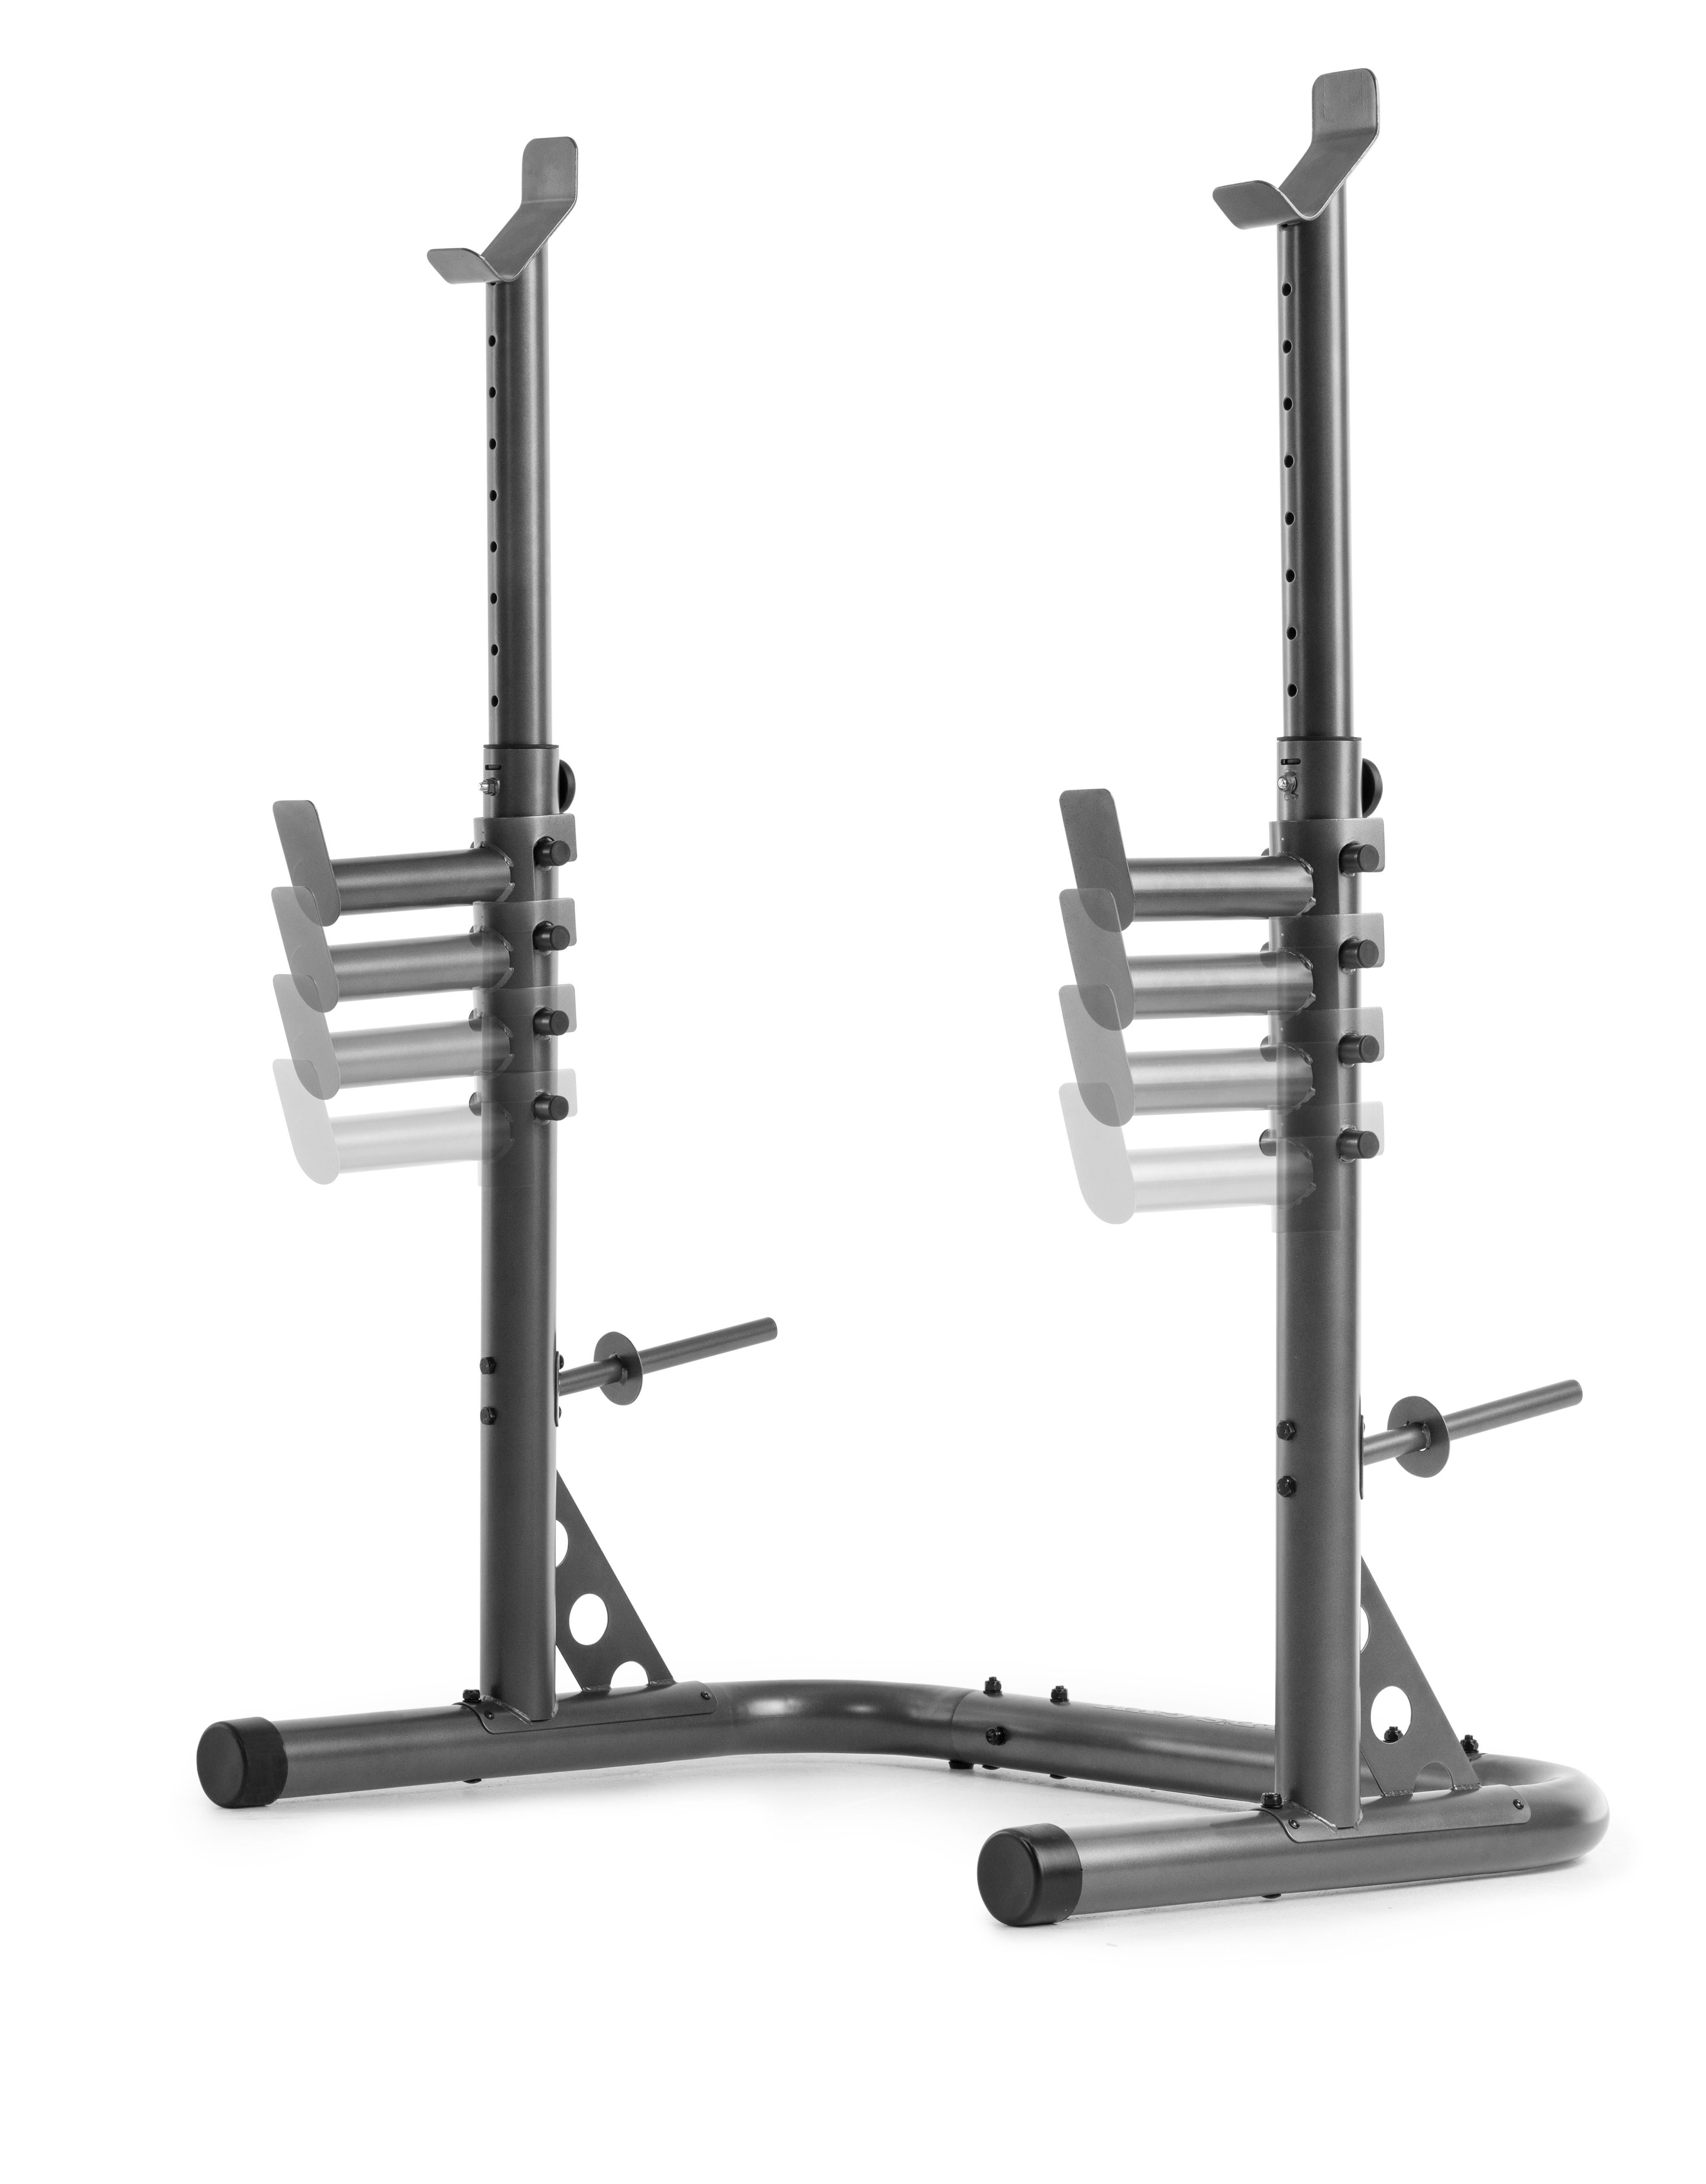 Sports & Outdoors in 2020 Adjustable workout bench